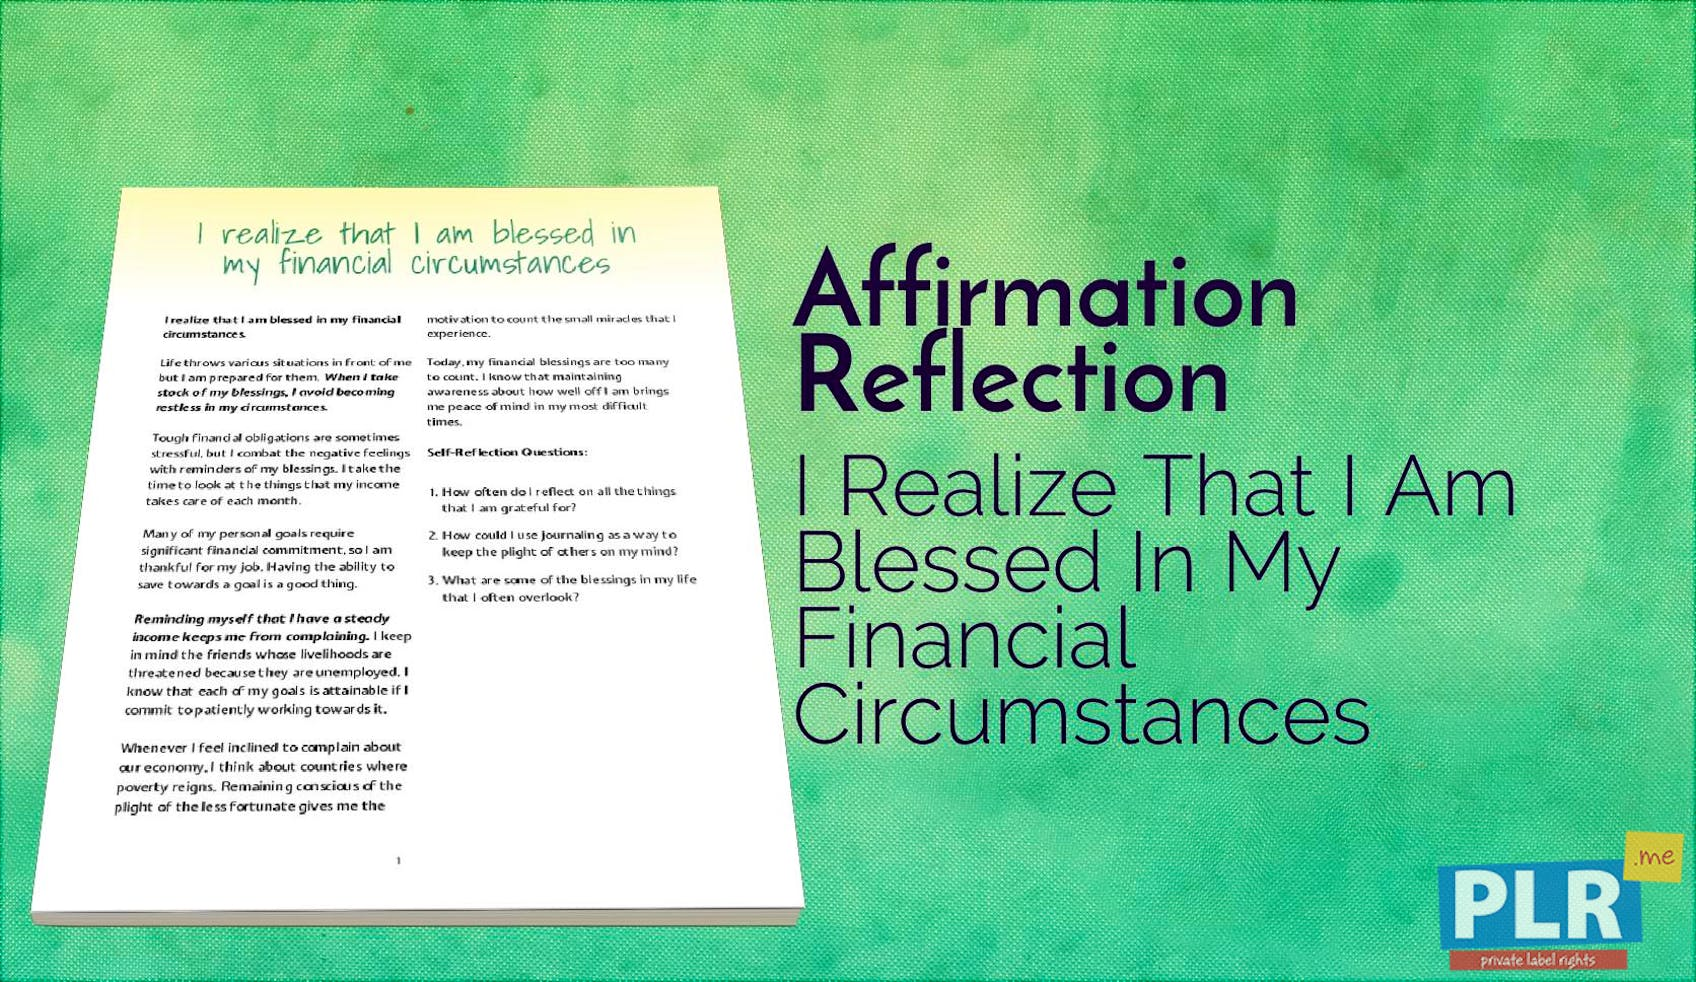 I Realize That I Am Blessed In My Financial Circumstances